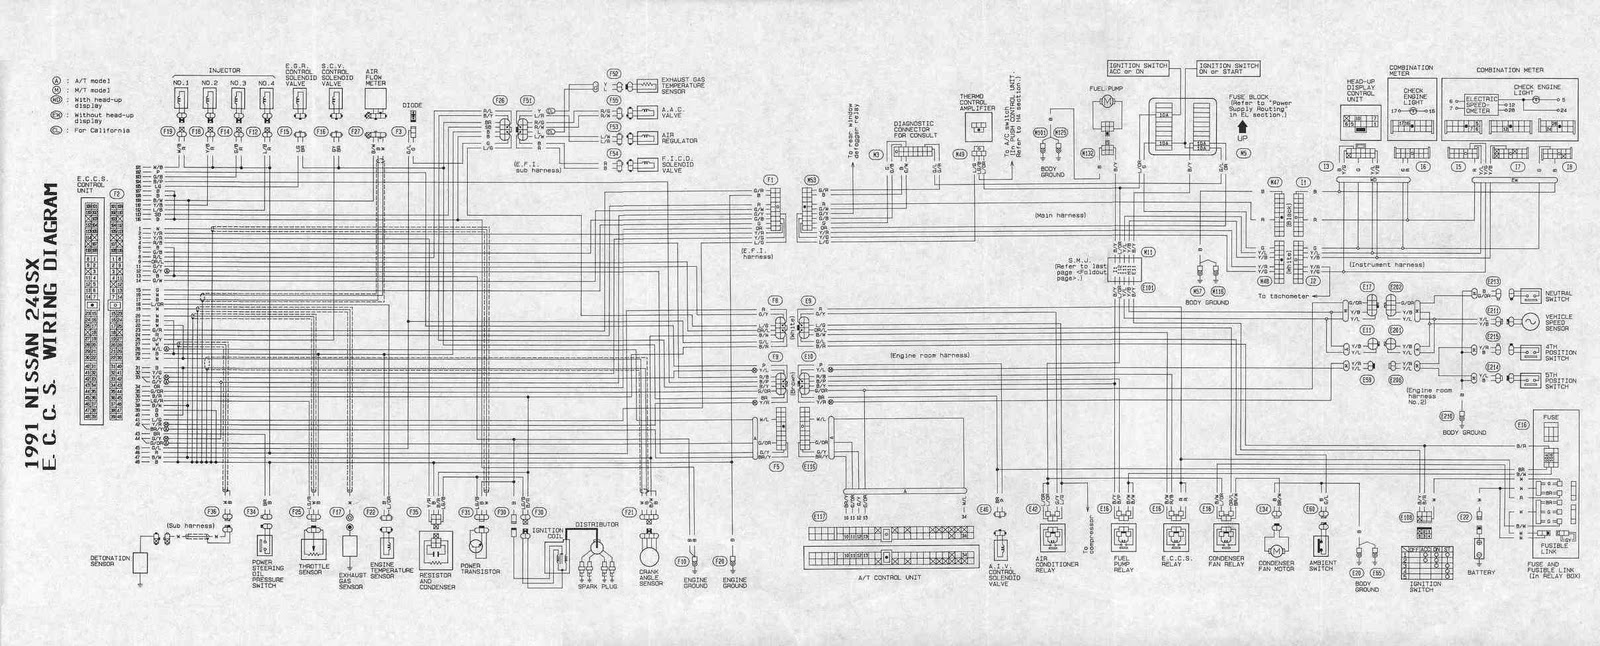 DIAGRAM] 89 240sx Wiring Diagram FULL Version HD Quality Wiring Diagram -  AUNT.PACHUKA.ITDiagram Database - pachuka.it